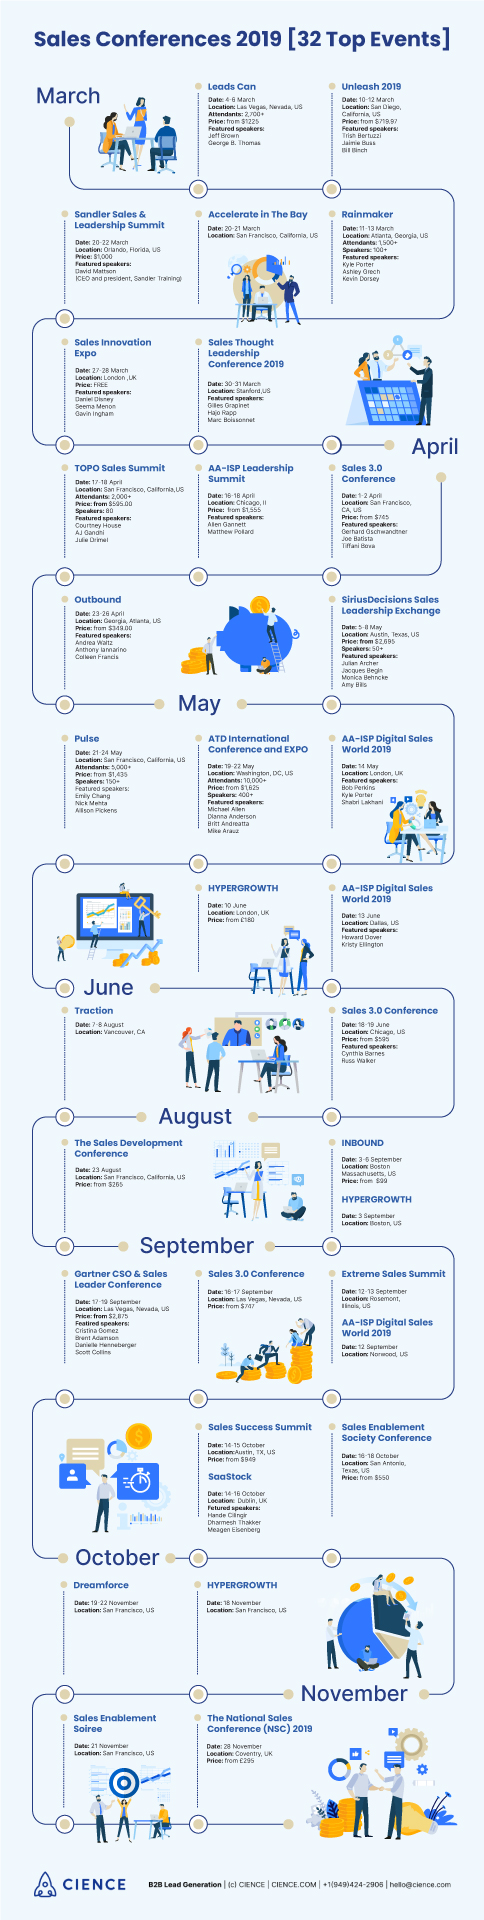 Major sales conferences and marketing events in 2019